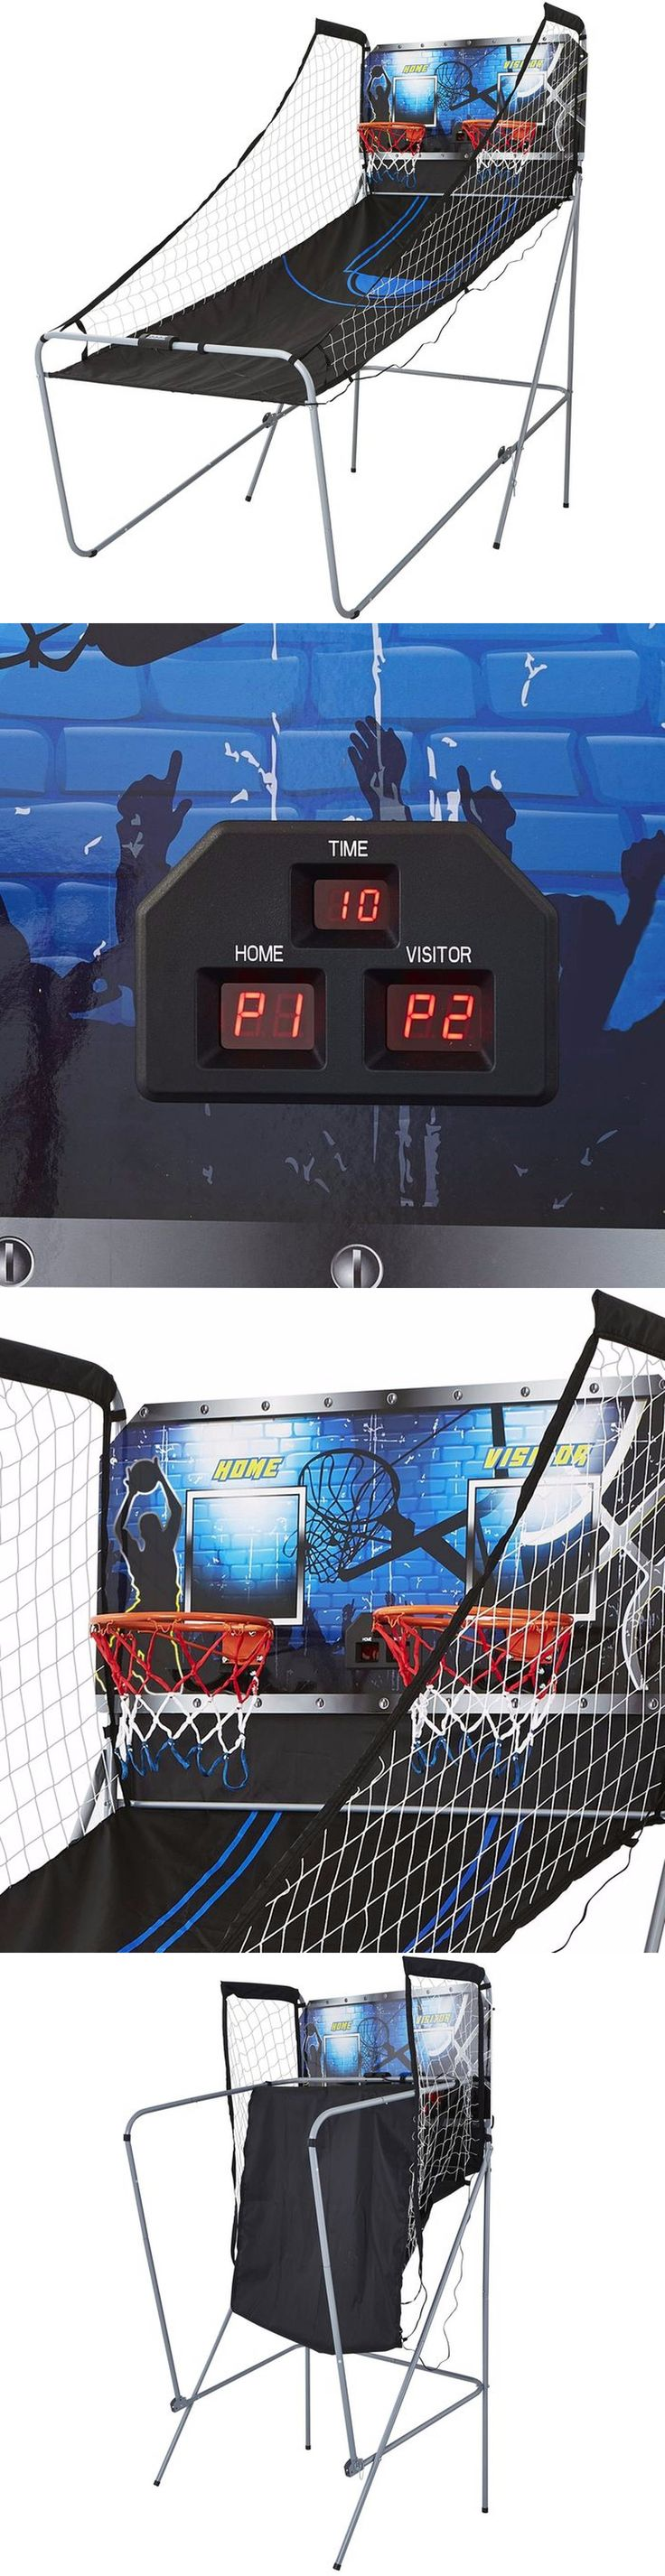 Other Indoor Games 36278: Arcade Basketball Game Electronic With 8 Fun Hoop Game Options 12 Rim 2-Player -> BUY IT NOW ONLY: $78.95 on eBay!